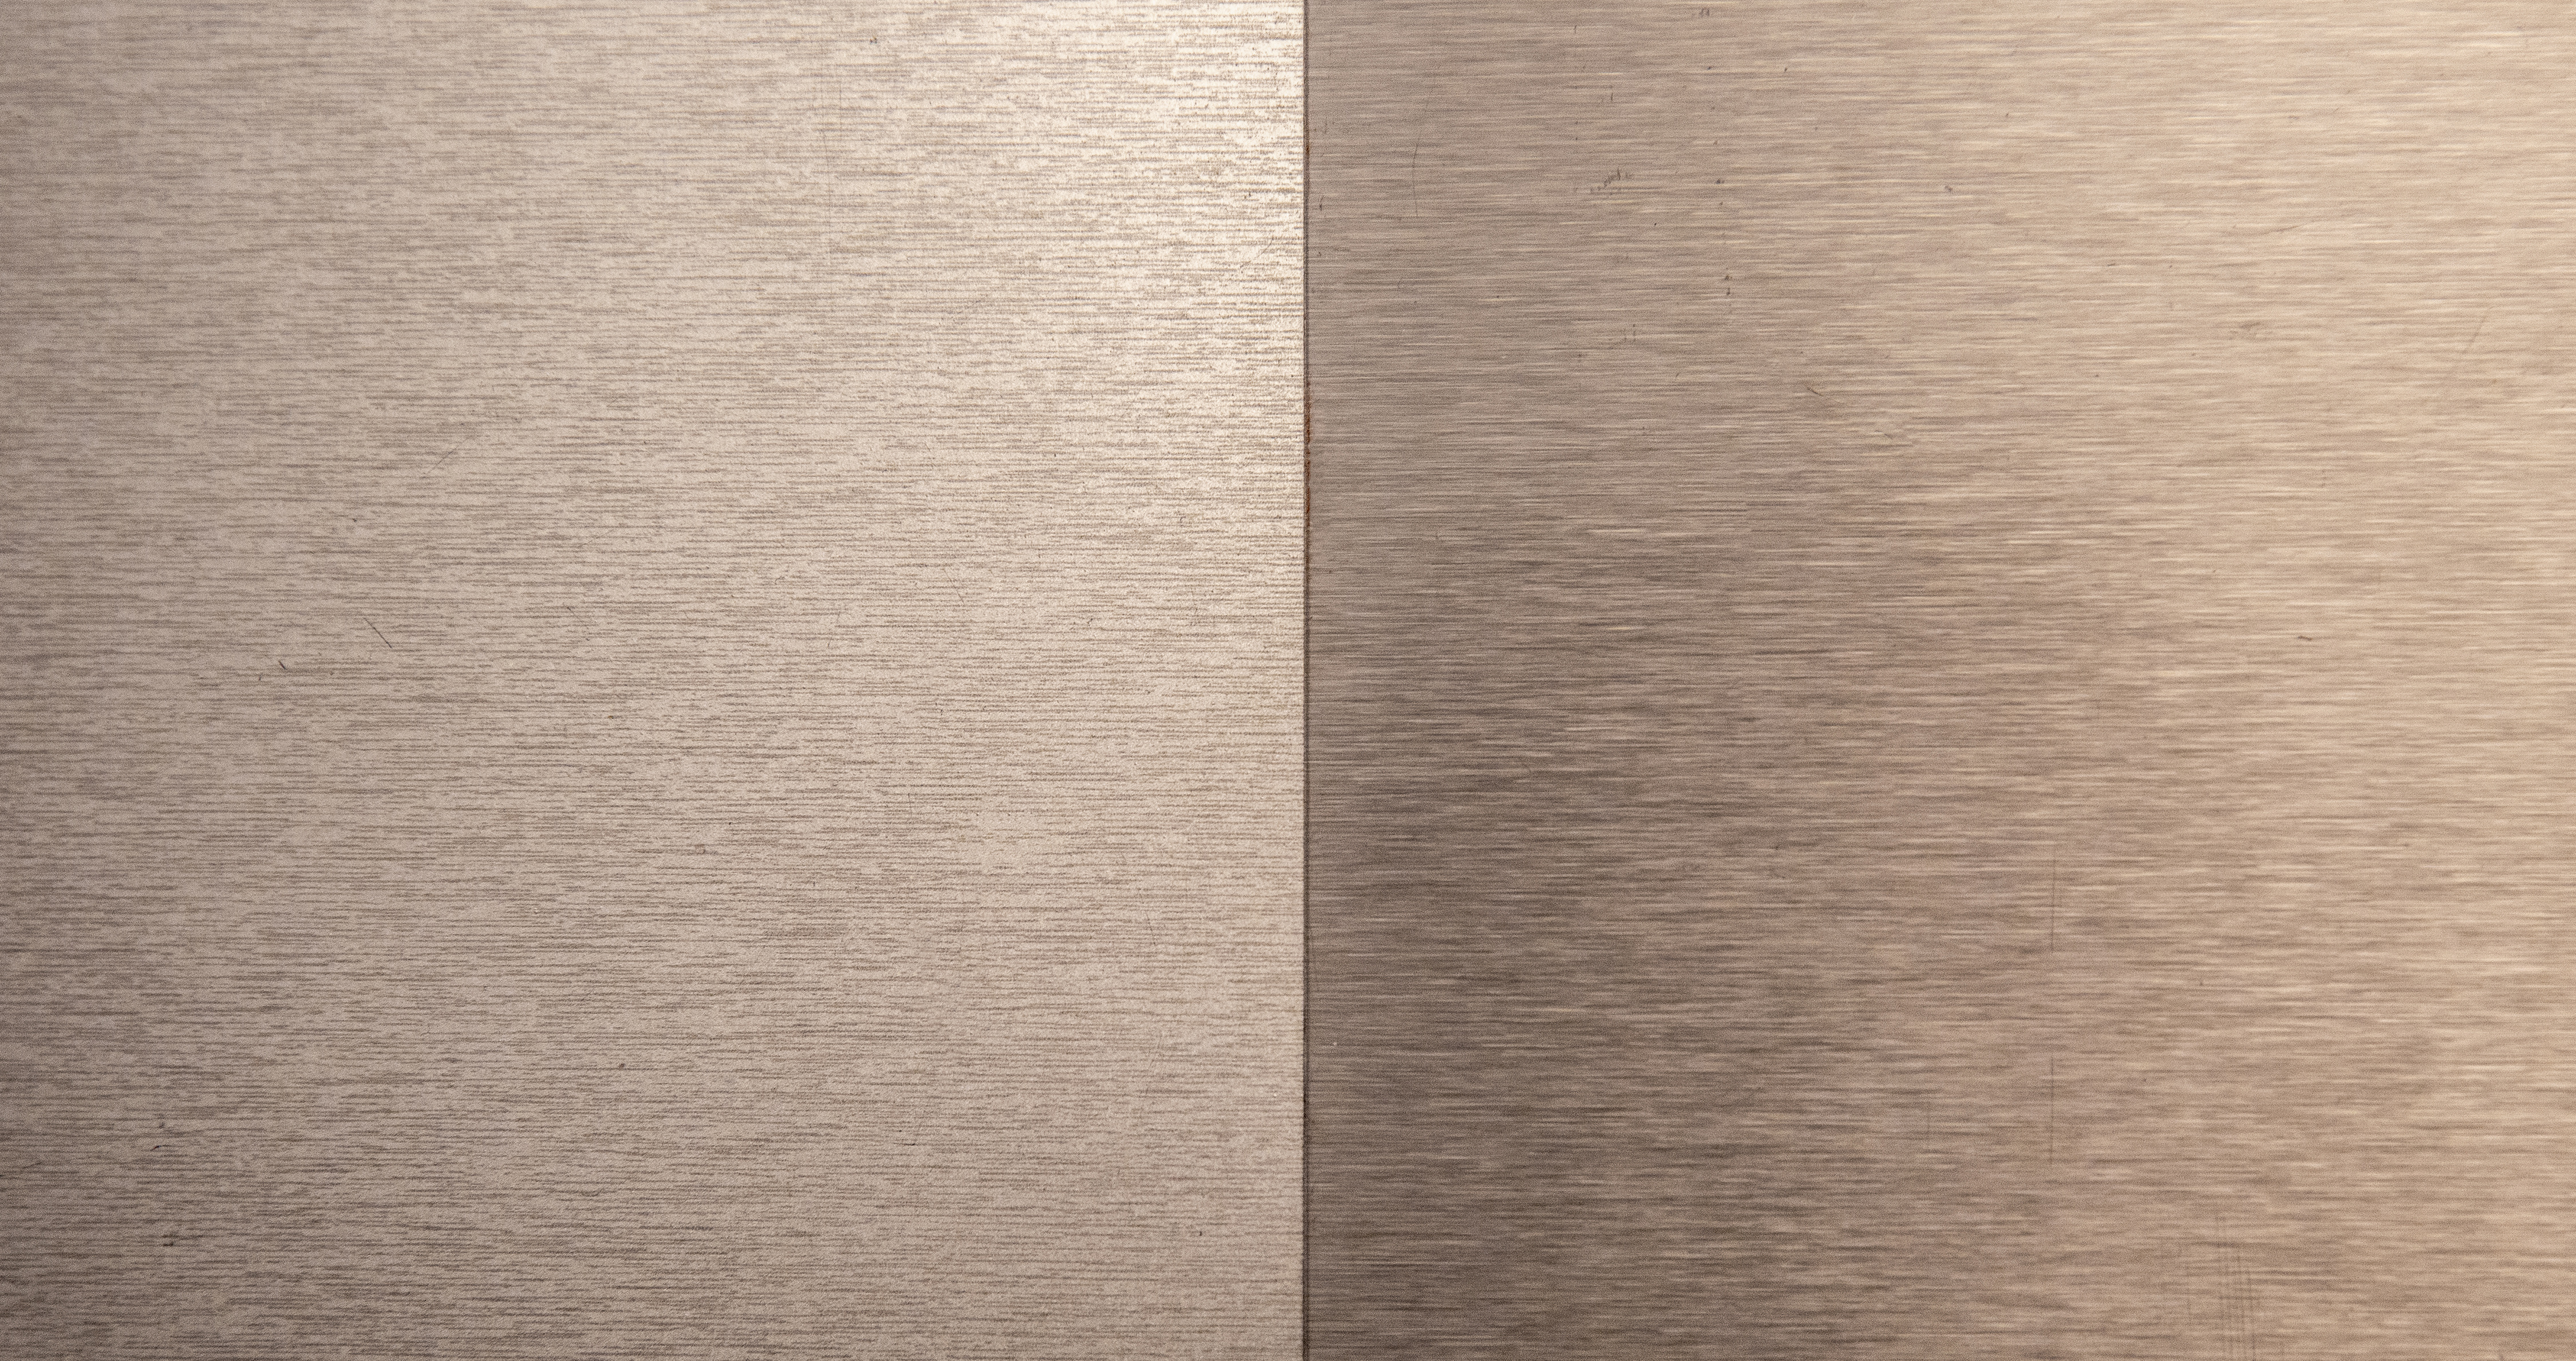 Finishes Simulate Stainless Steel